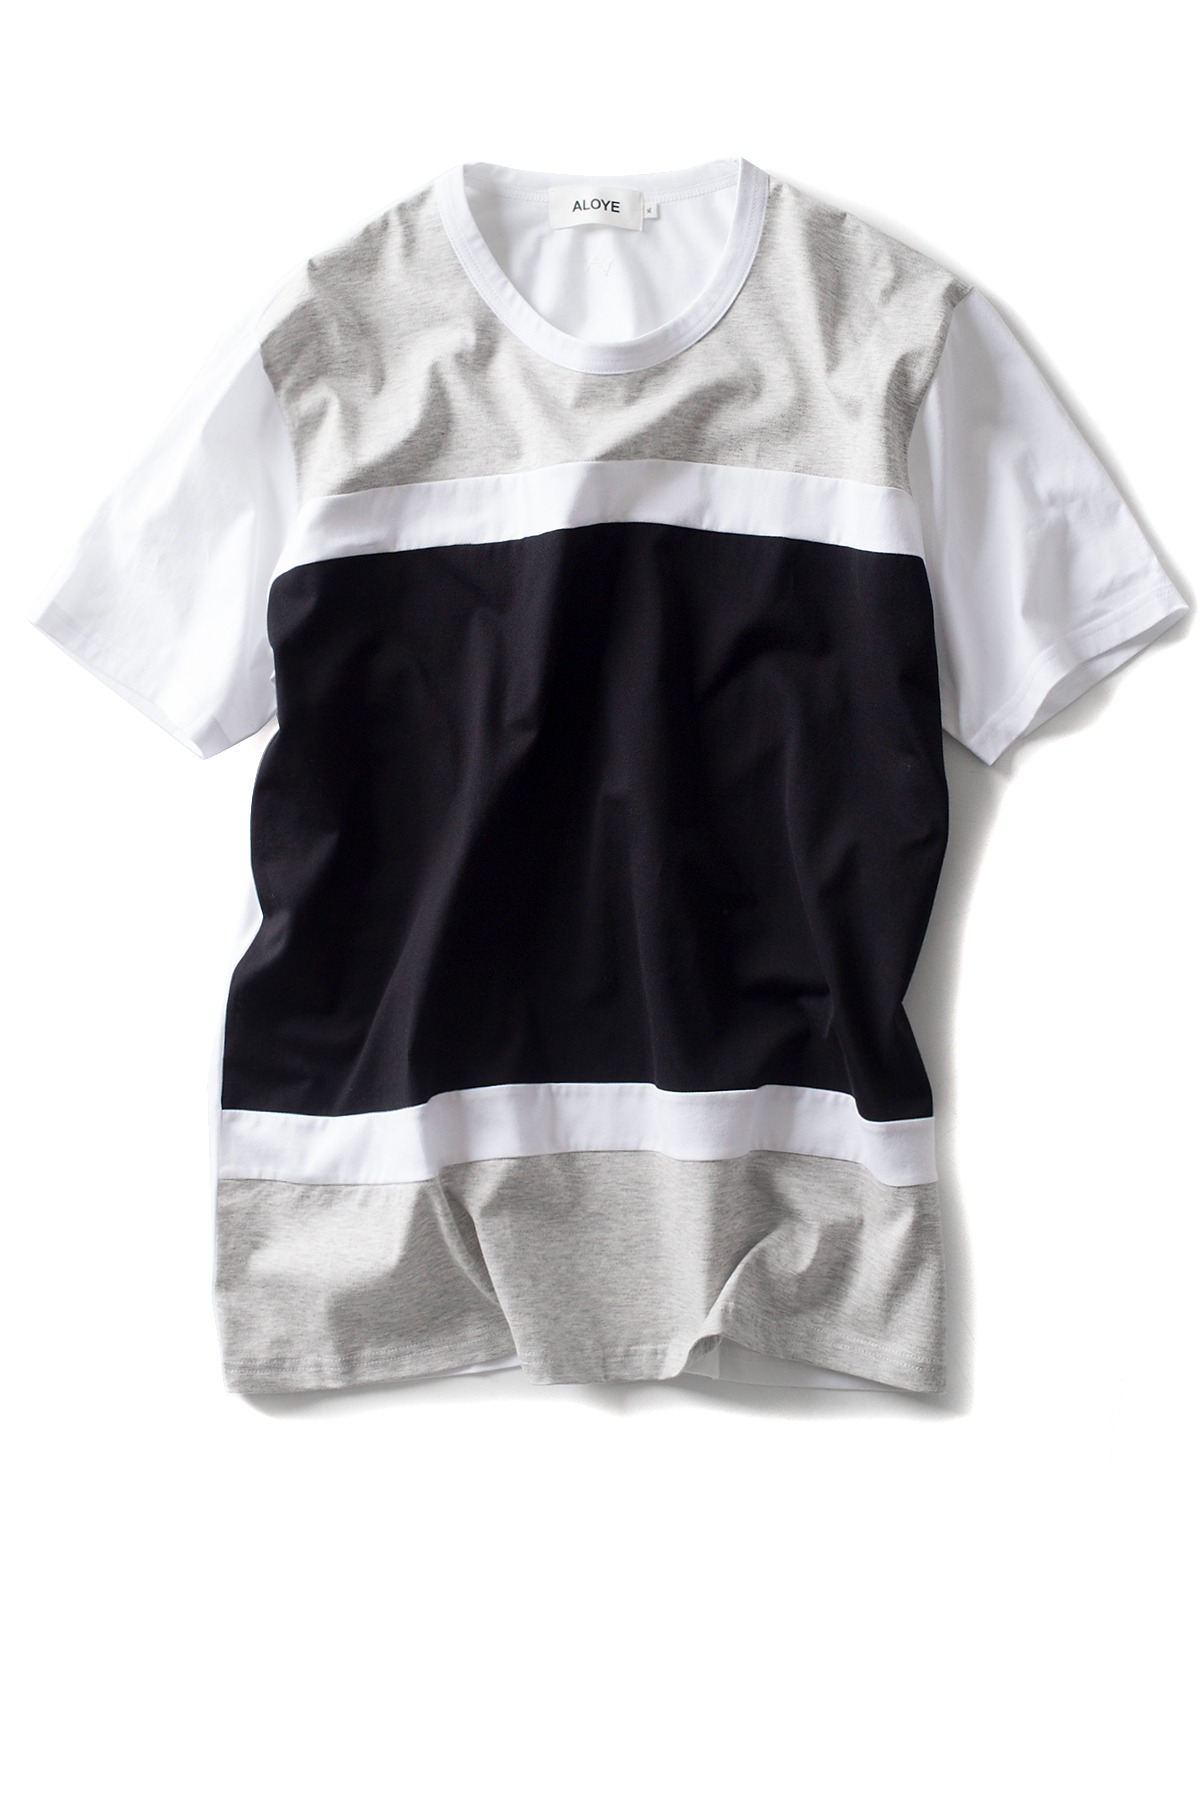 ALOYE : Color Blocks -Short Sleeve T-Shirt (Grey / Black)